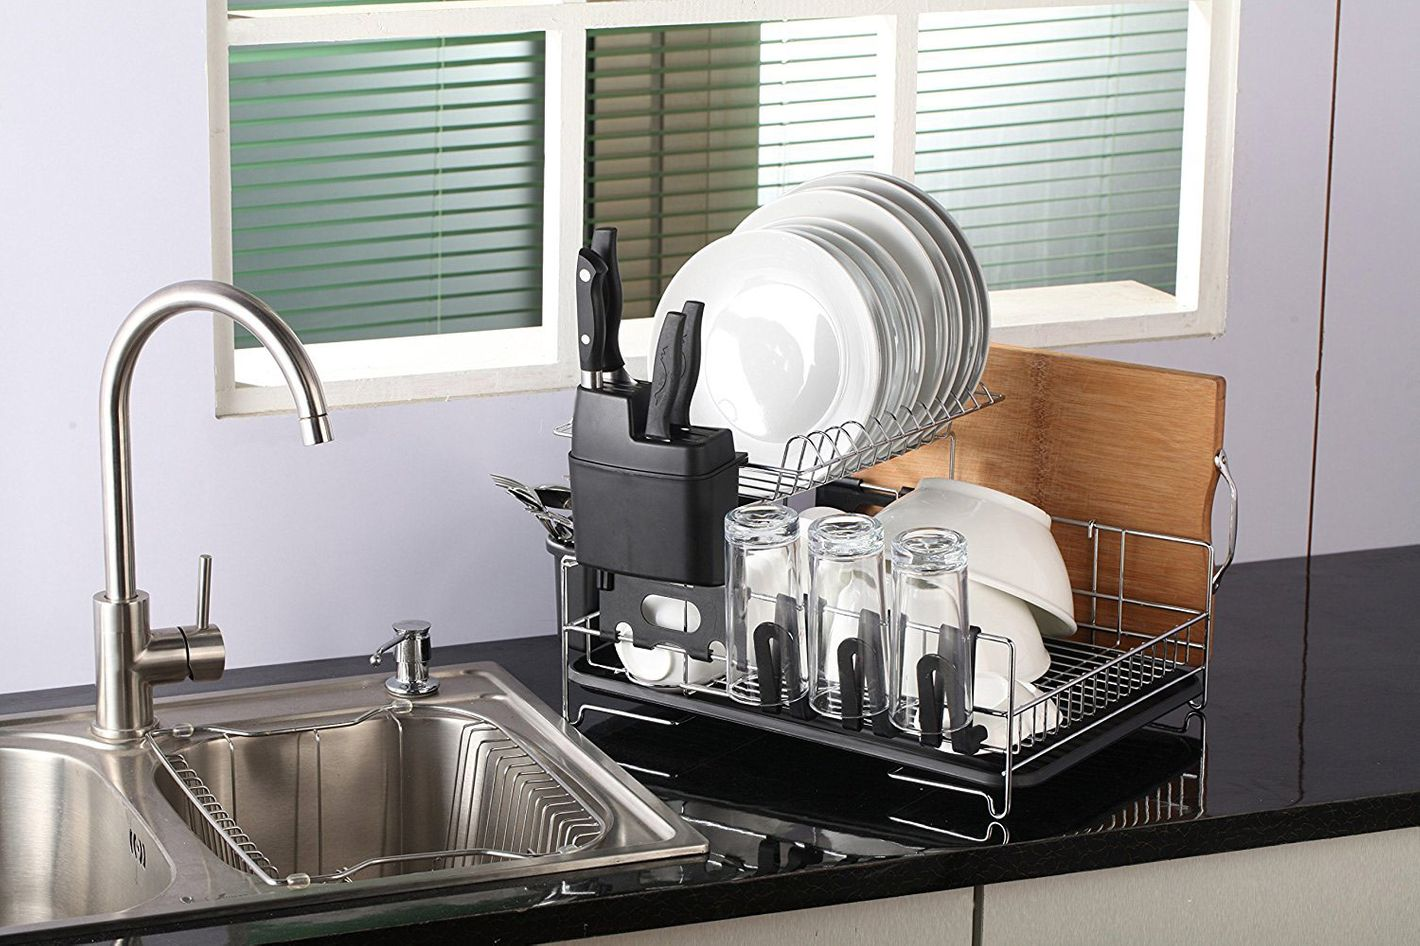 PremiumRacks Professional Dish Rack U2014 304 Stainless Steel